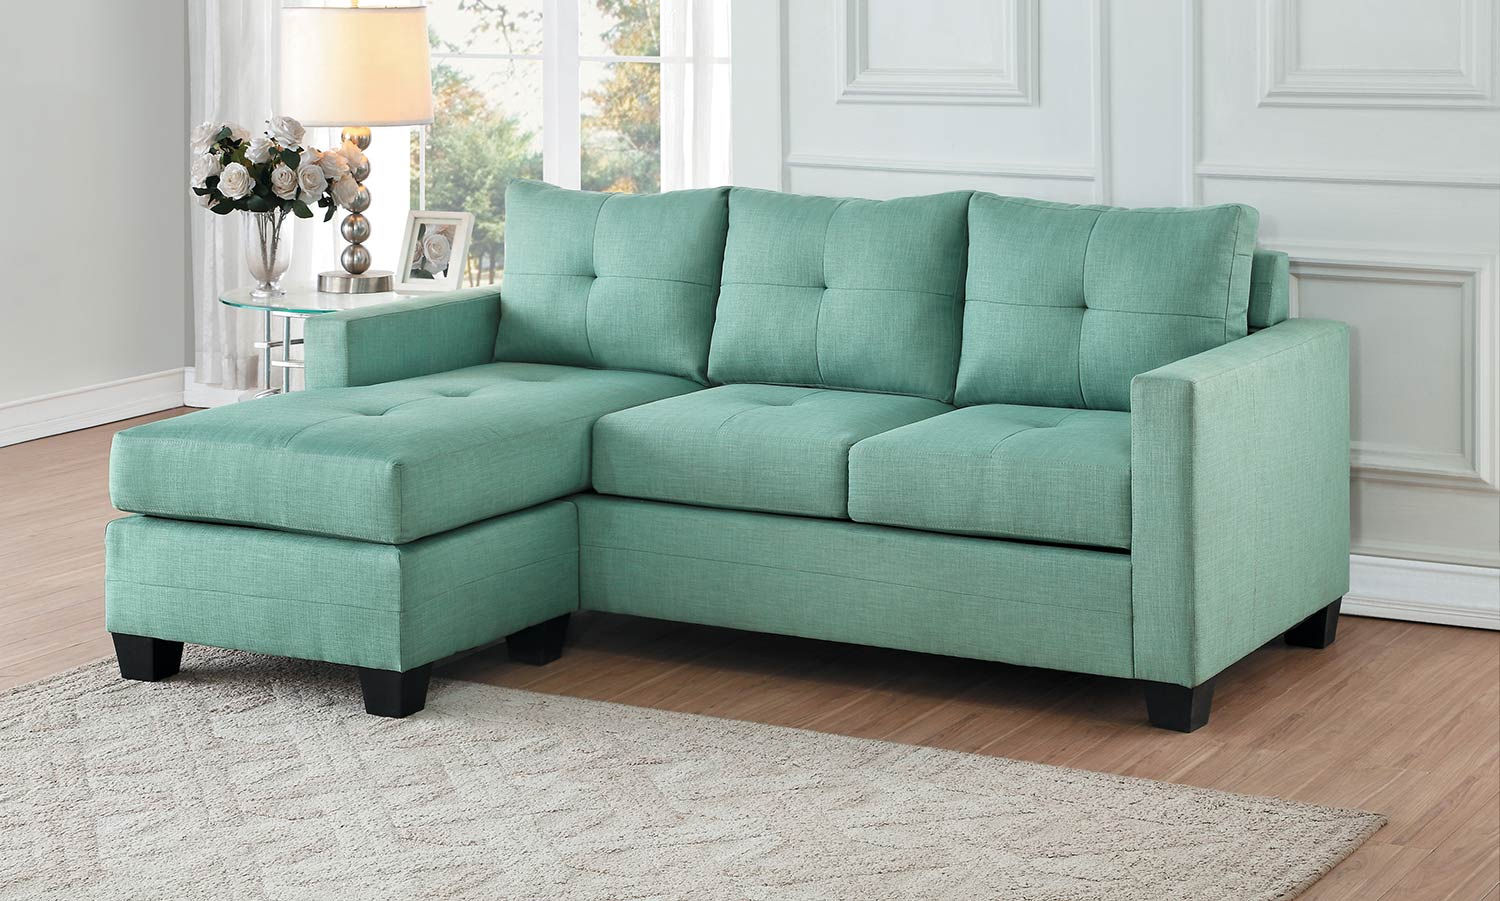 Homelegance Phelps Reversible Sofa Chaise - Teal